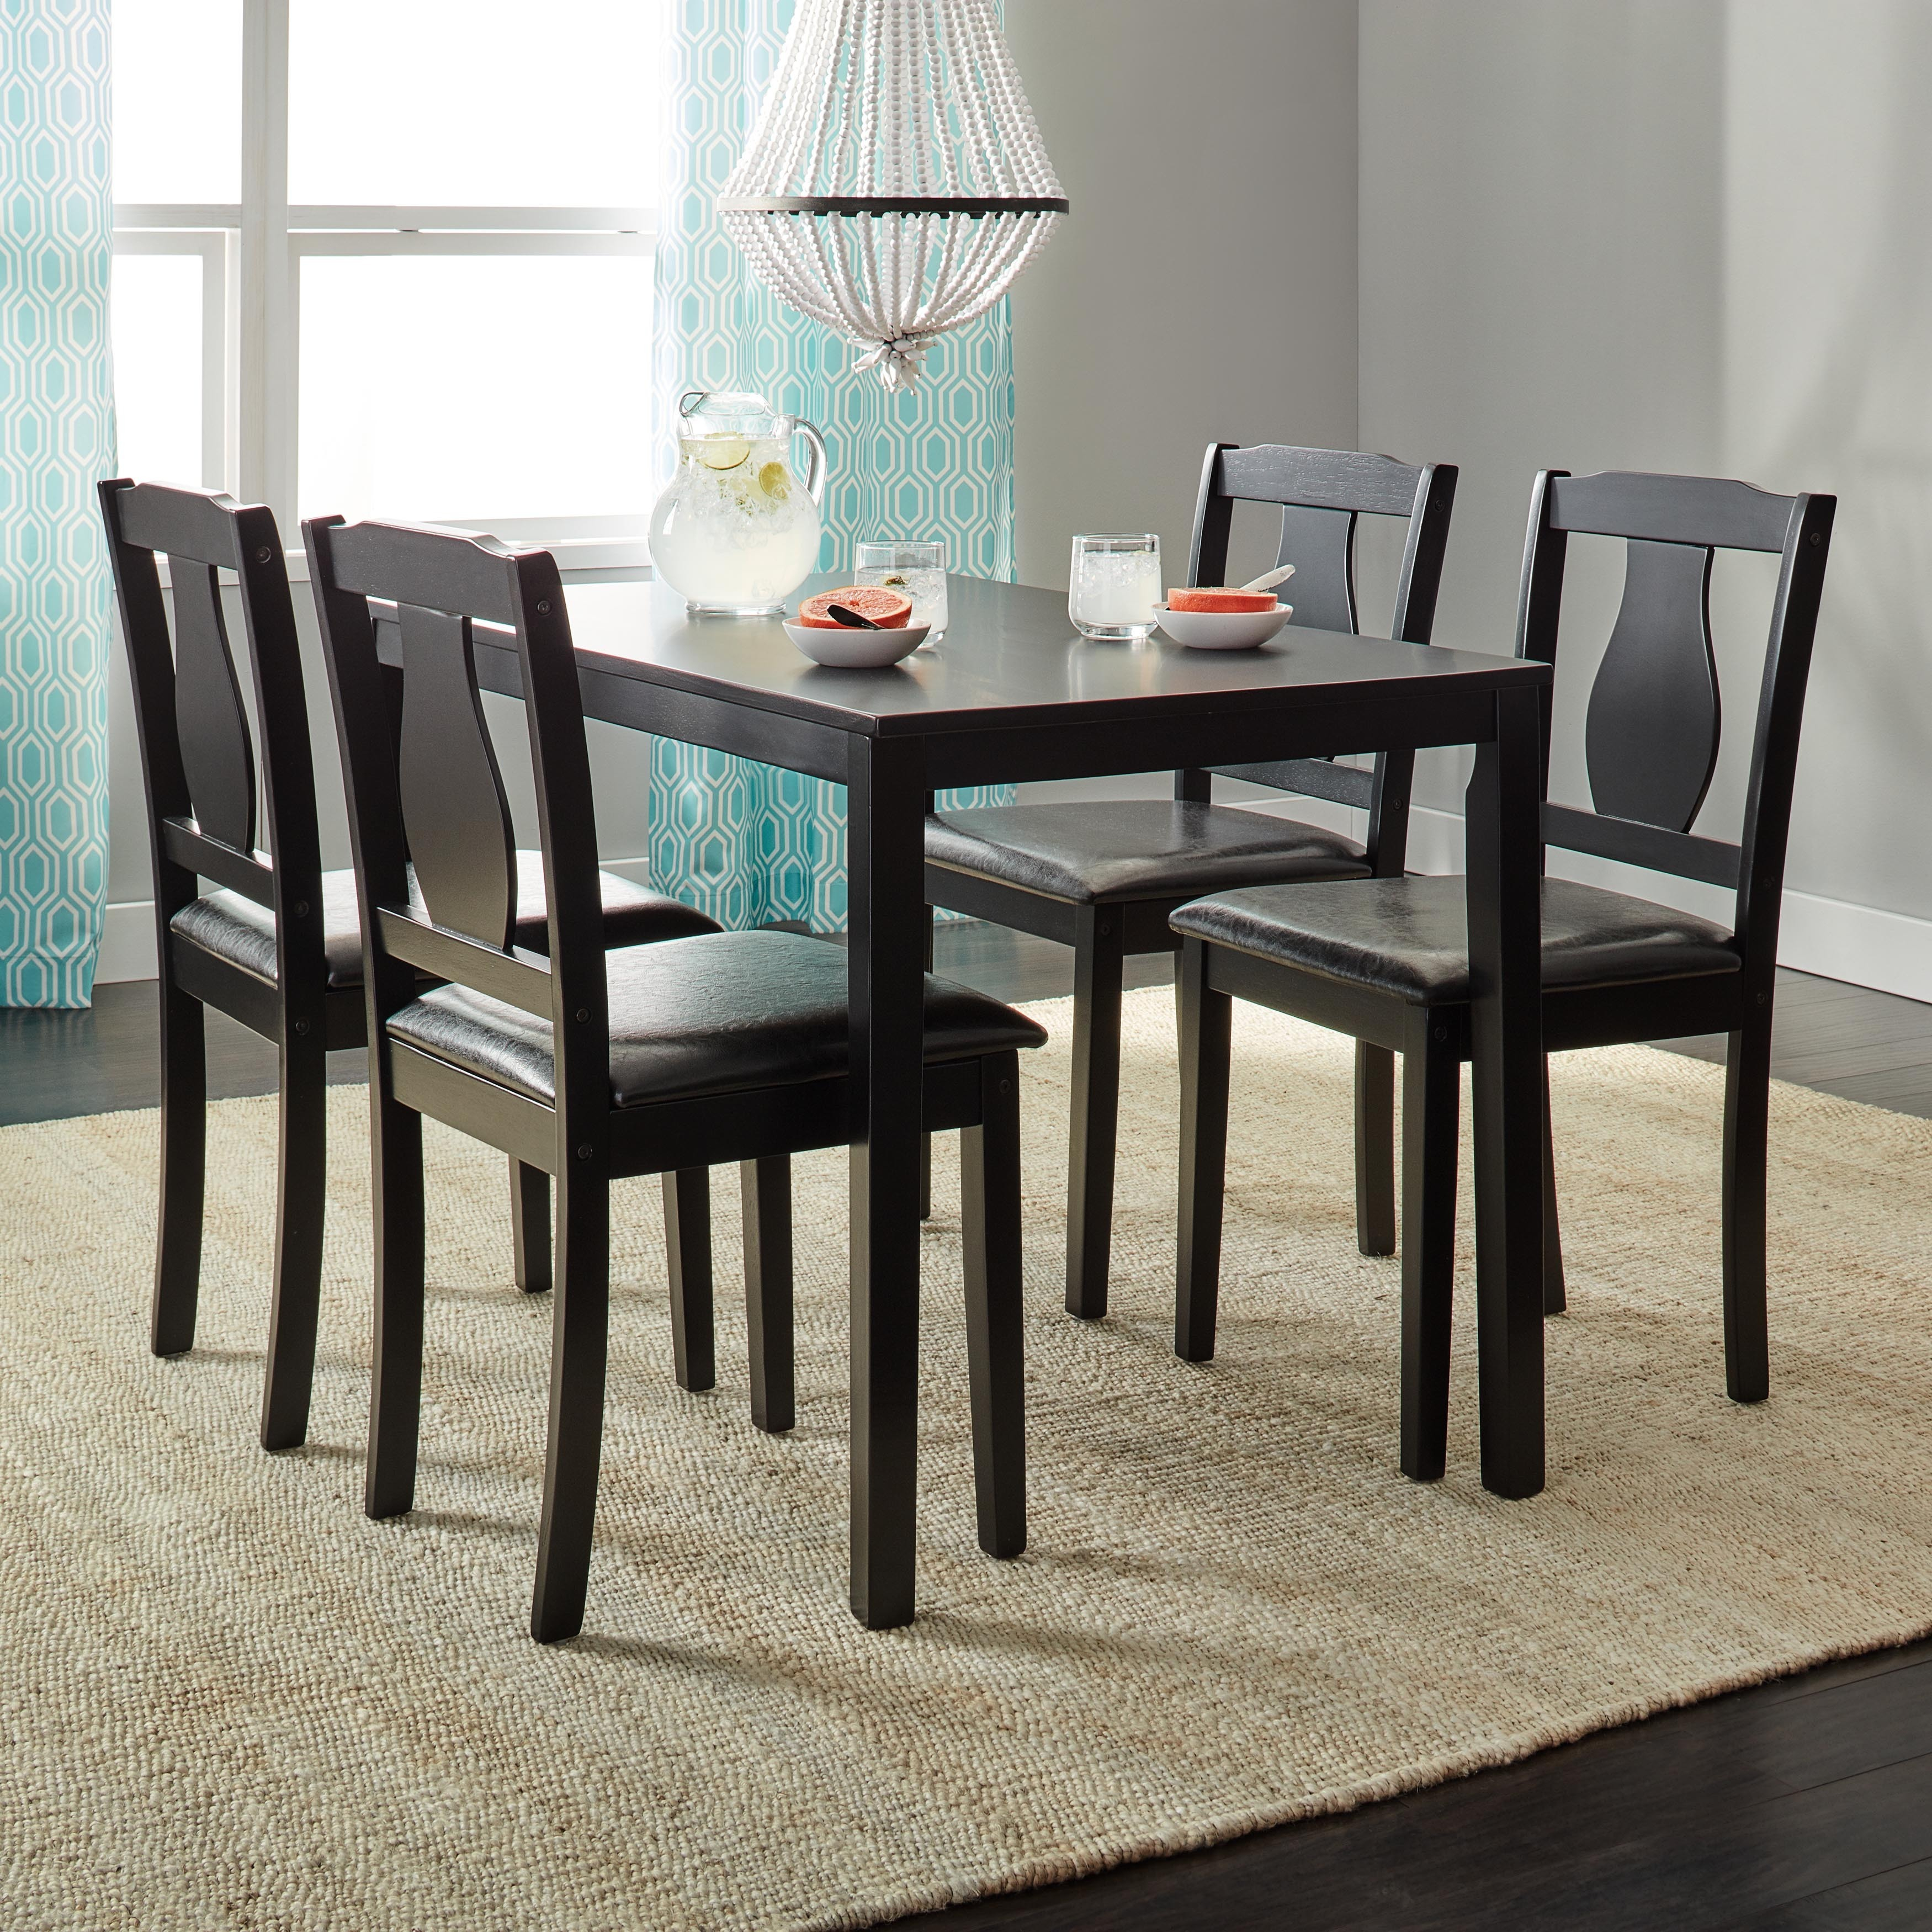 Buy Kitchen Dining Room Sets Online At Overstock Our Best Dining intended for Wholesale Living Room Sets